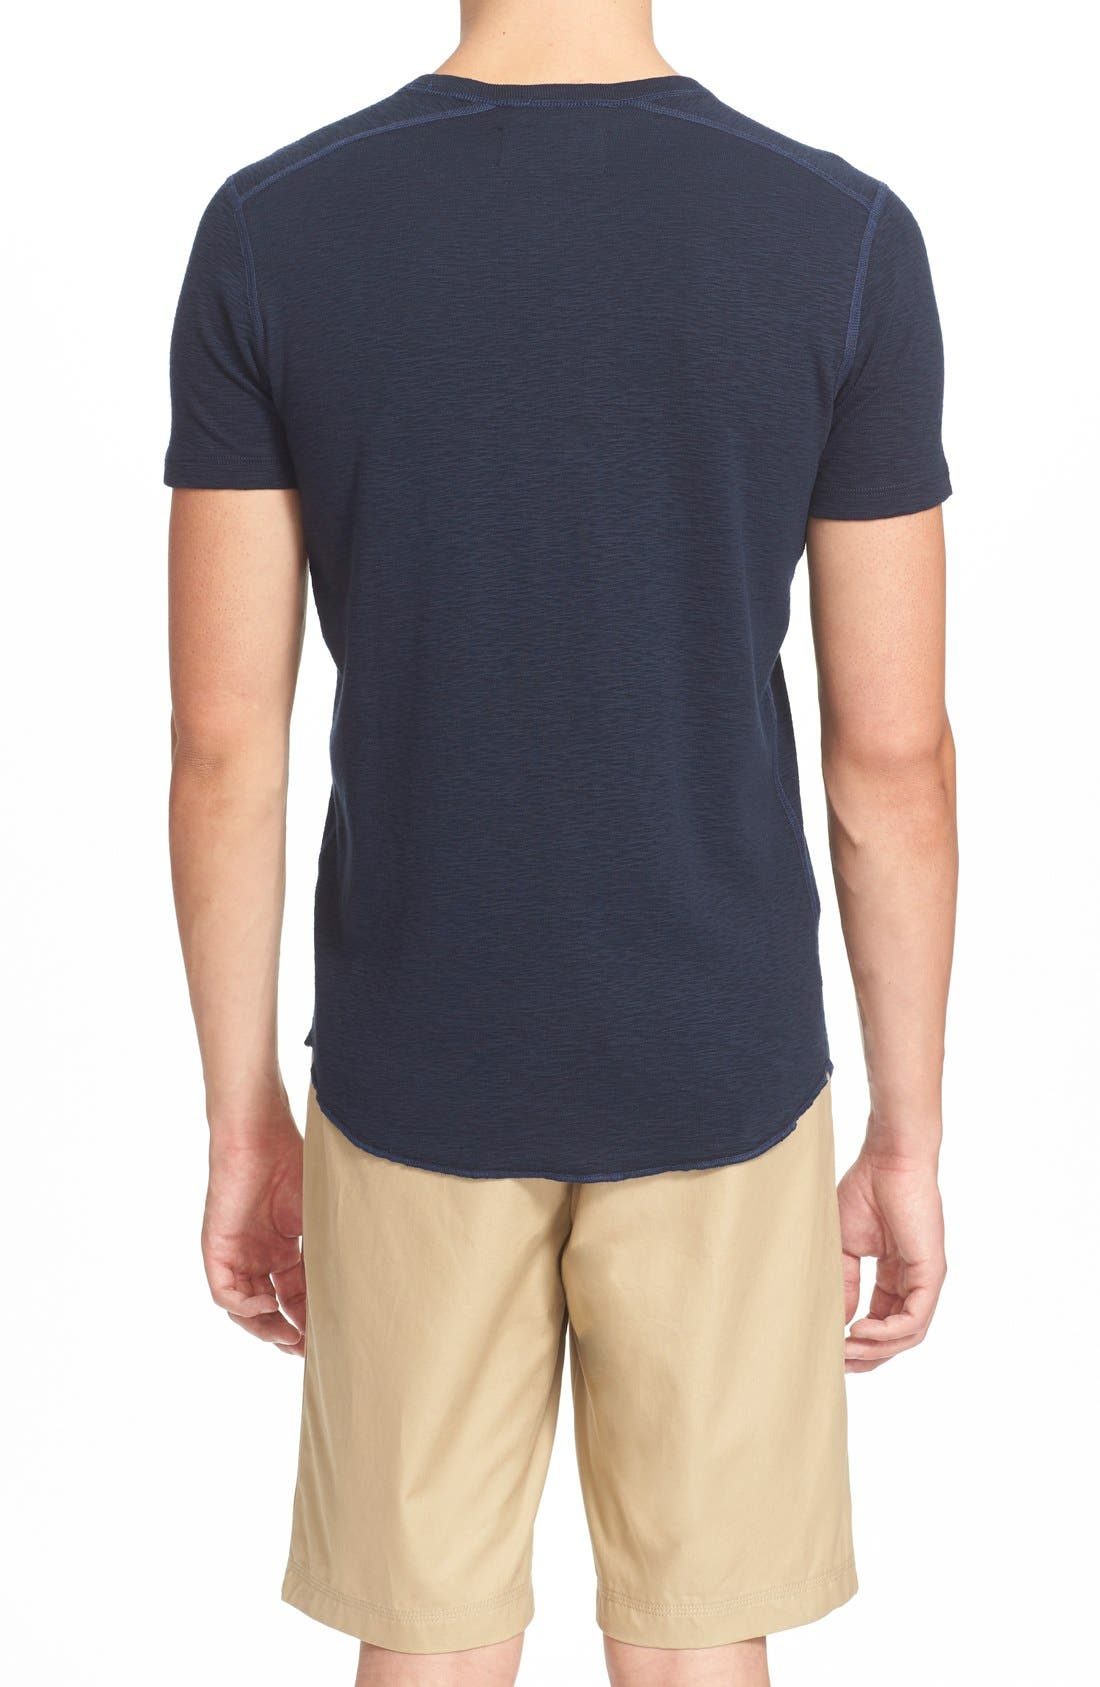 Men's Wings Horns Clothing: Shop Men's Wings Horns Clothes | Nordstrom